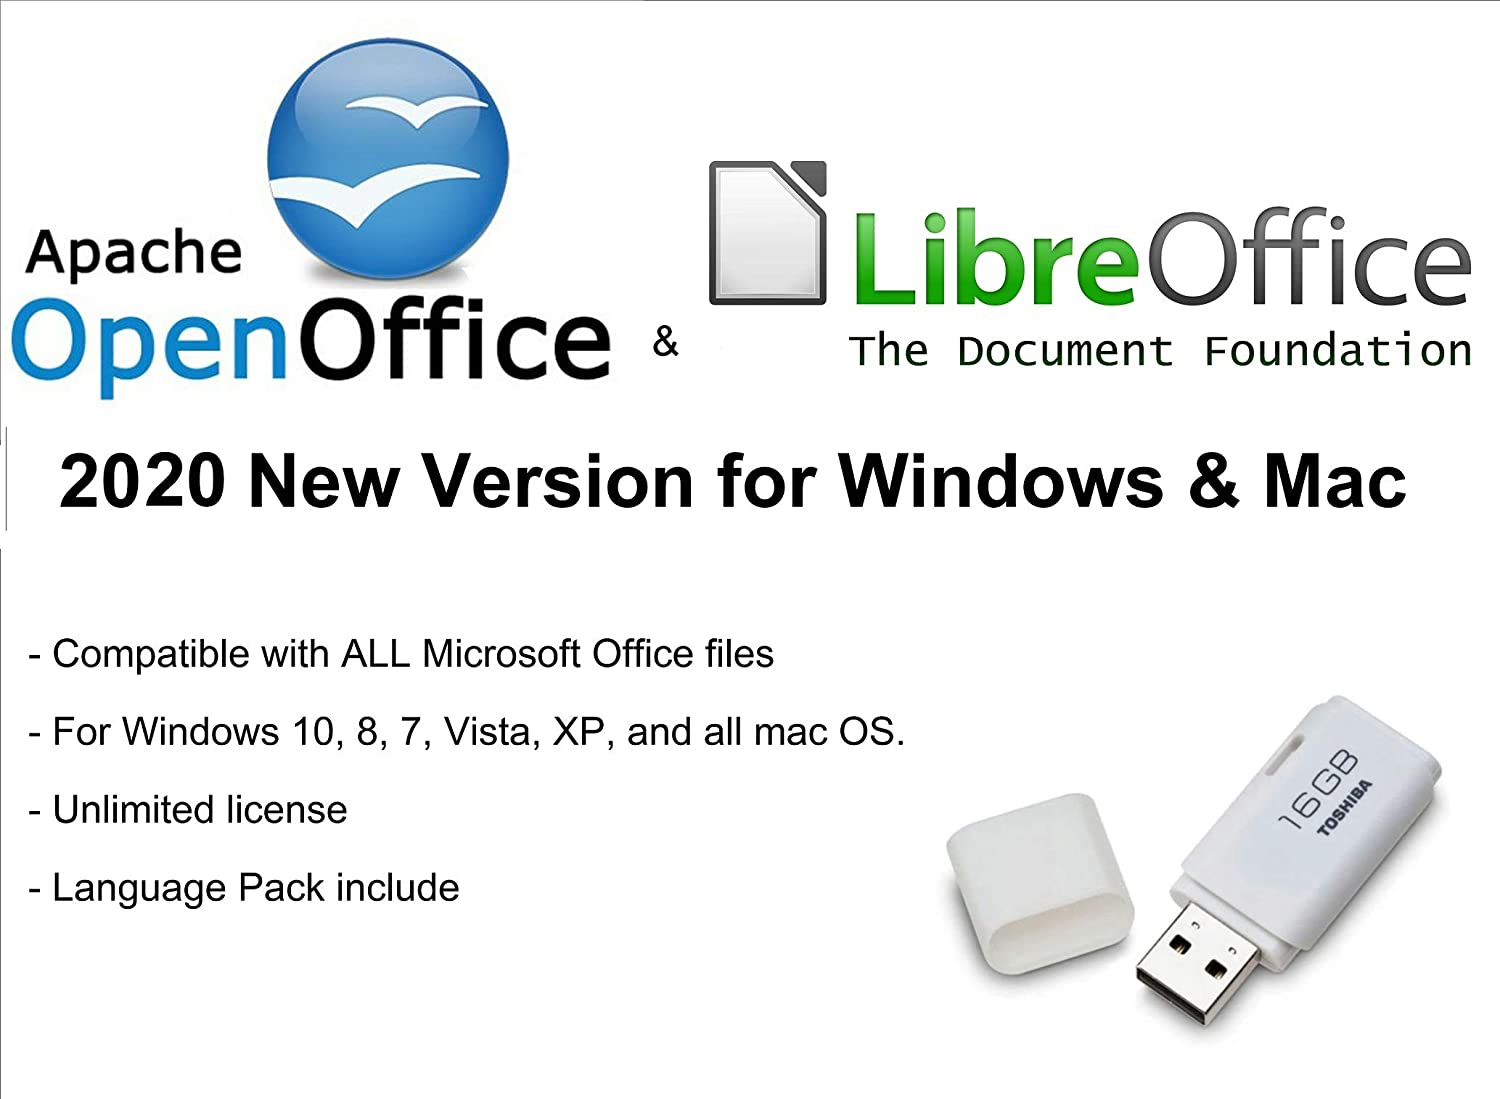 ✅ Apache Open Office & Libre Office 2020 Latest Full Version for Microsoft Windows & Mac OS X